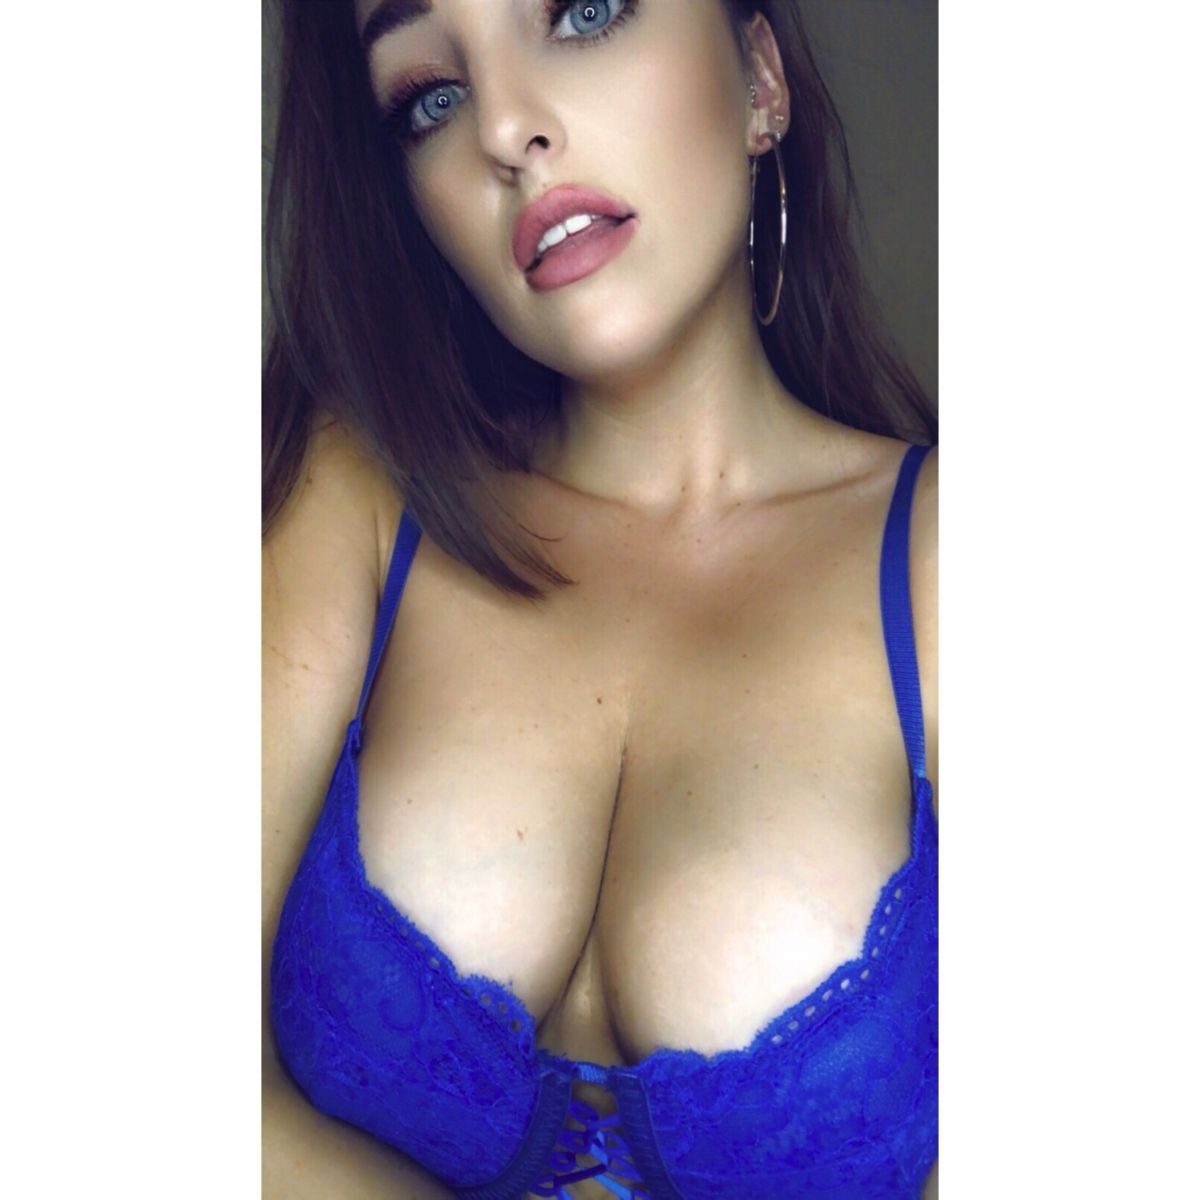 Kay photos and videos onlyfans leaked